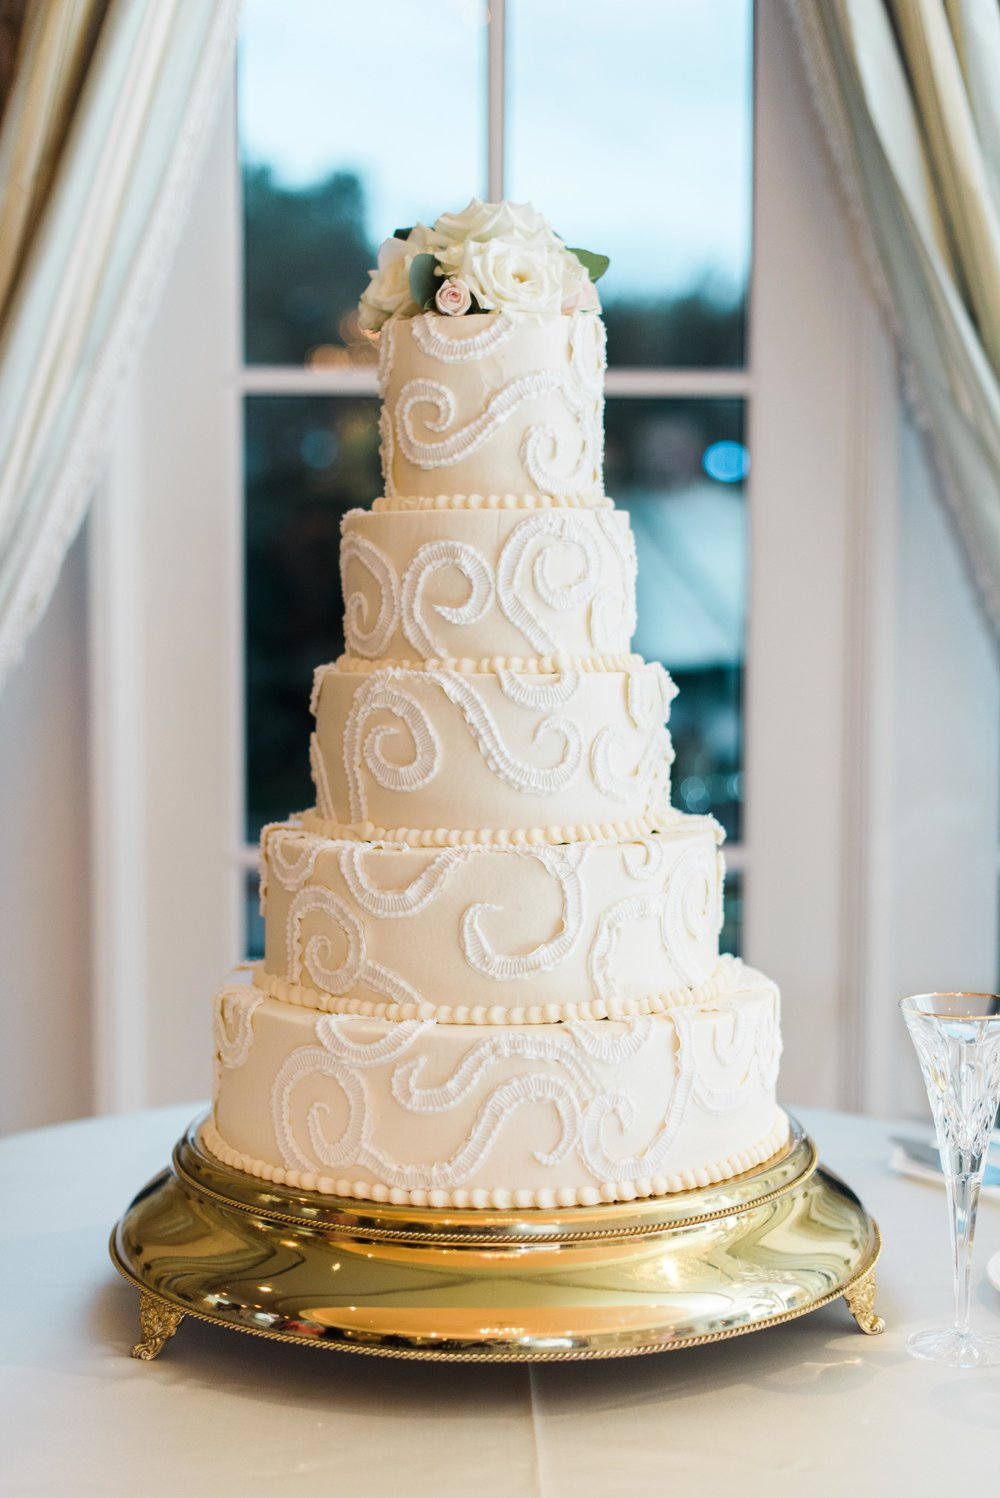 Fine-Art-Film-Houston-Wedding-Photographer-Best-Top-Luxury-Texas-Austin-Dallas-Destination-Dana-Fernandez-Photography-River-Oaks-Country-Club-South-Main-Baptist-Ceremony-Reception-Wedding-18.jpg